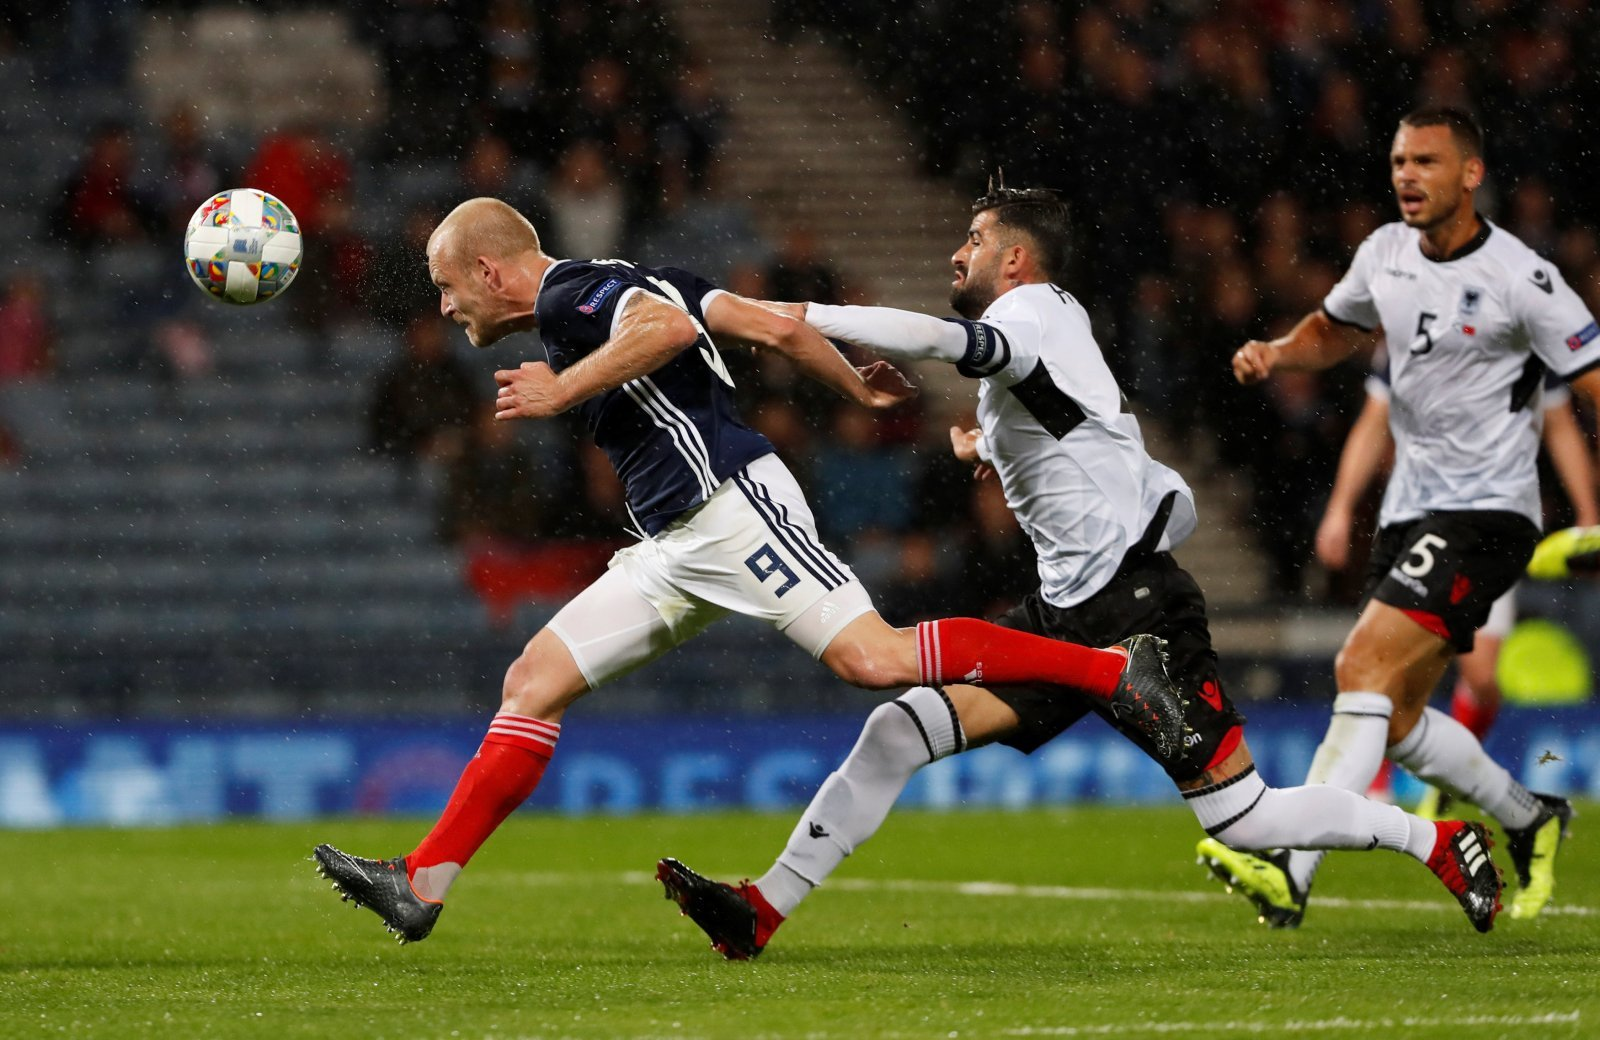 Birmingham want to sign Steven Naismith